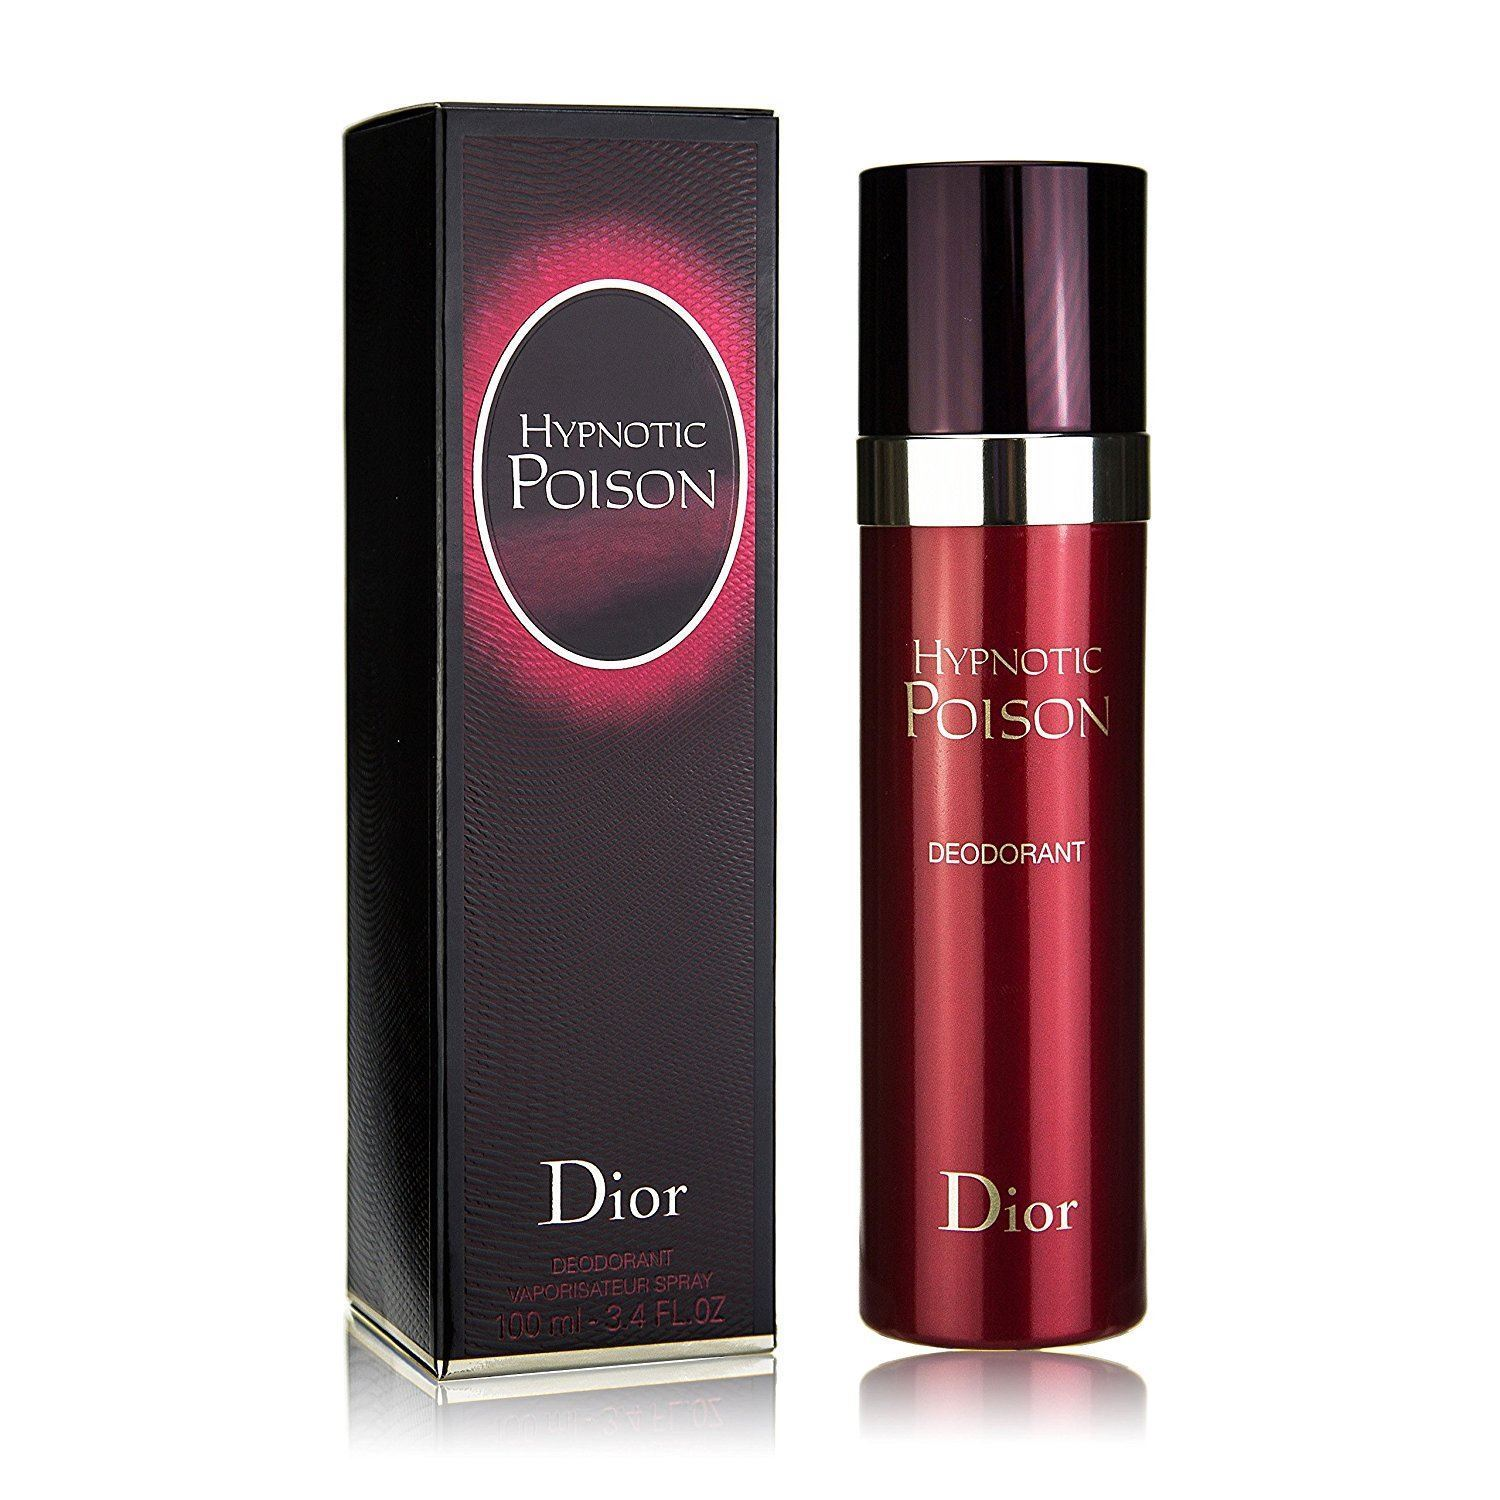 DIOR HYPNOTIC POISON DEODORANT VAPORISATEUR SPRAY 100 ML